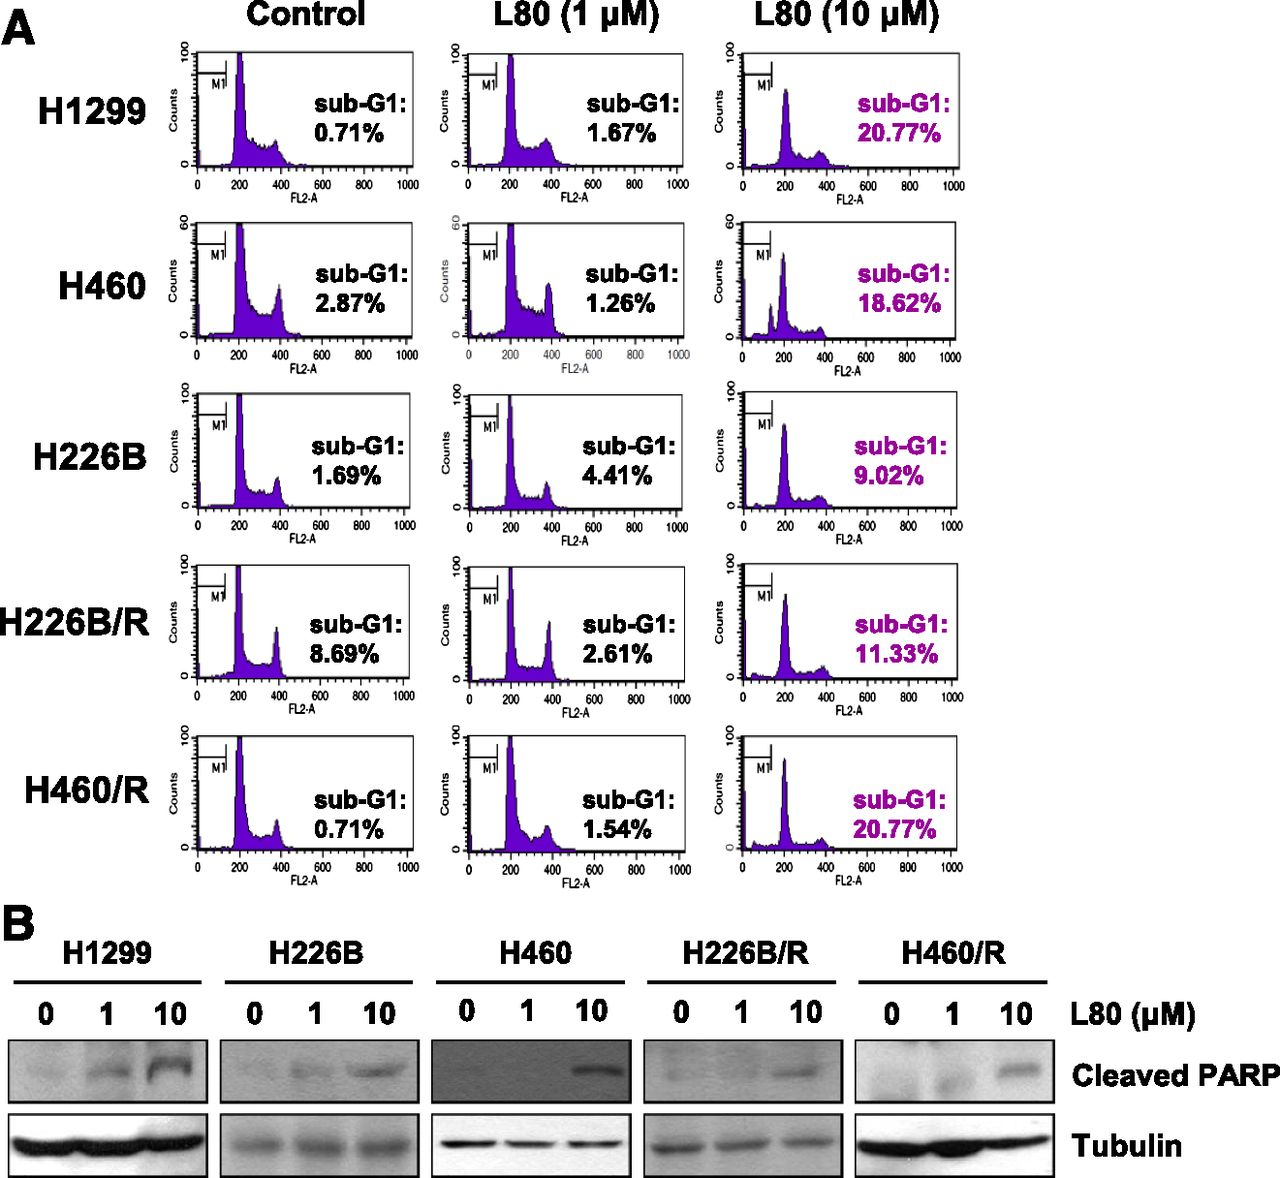 Synthesis And Evaluation Of A Novel Deguelin Derivative L80 Which Disrupts Atp Binding To The